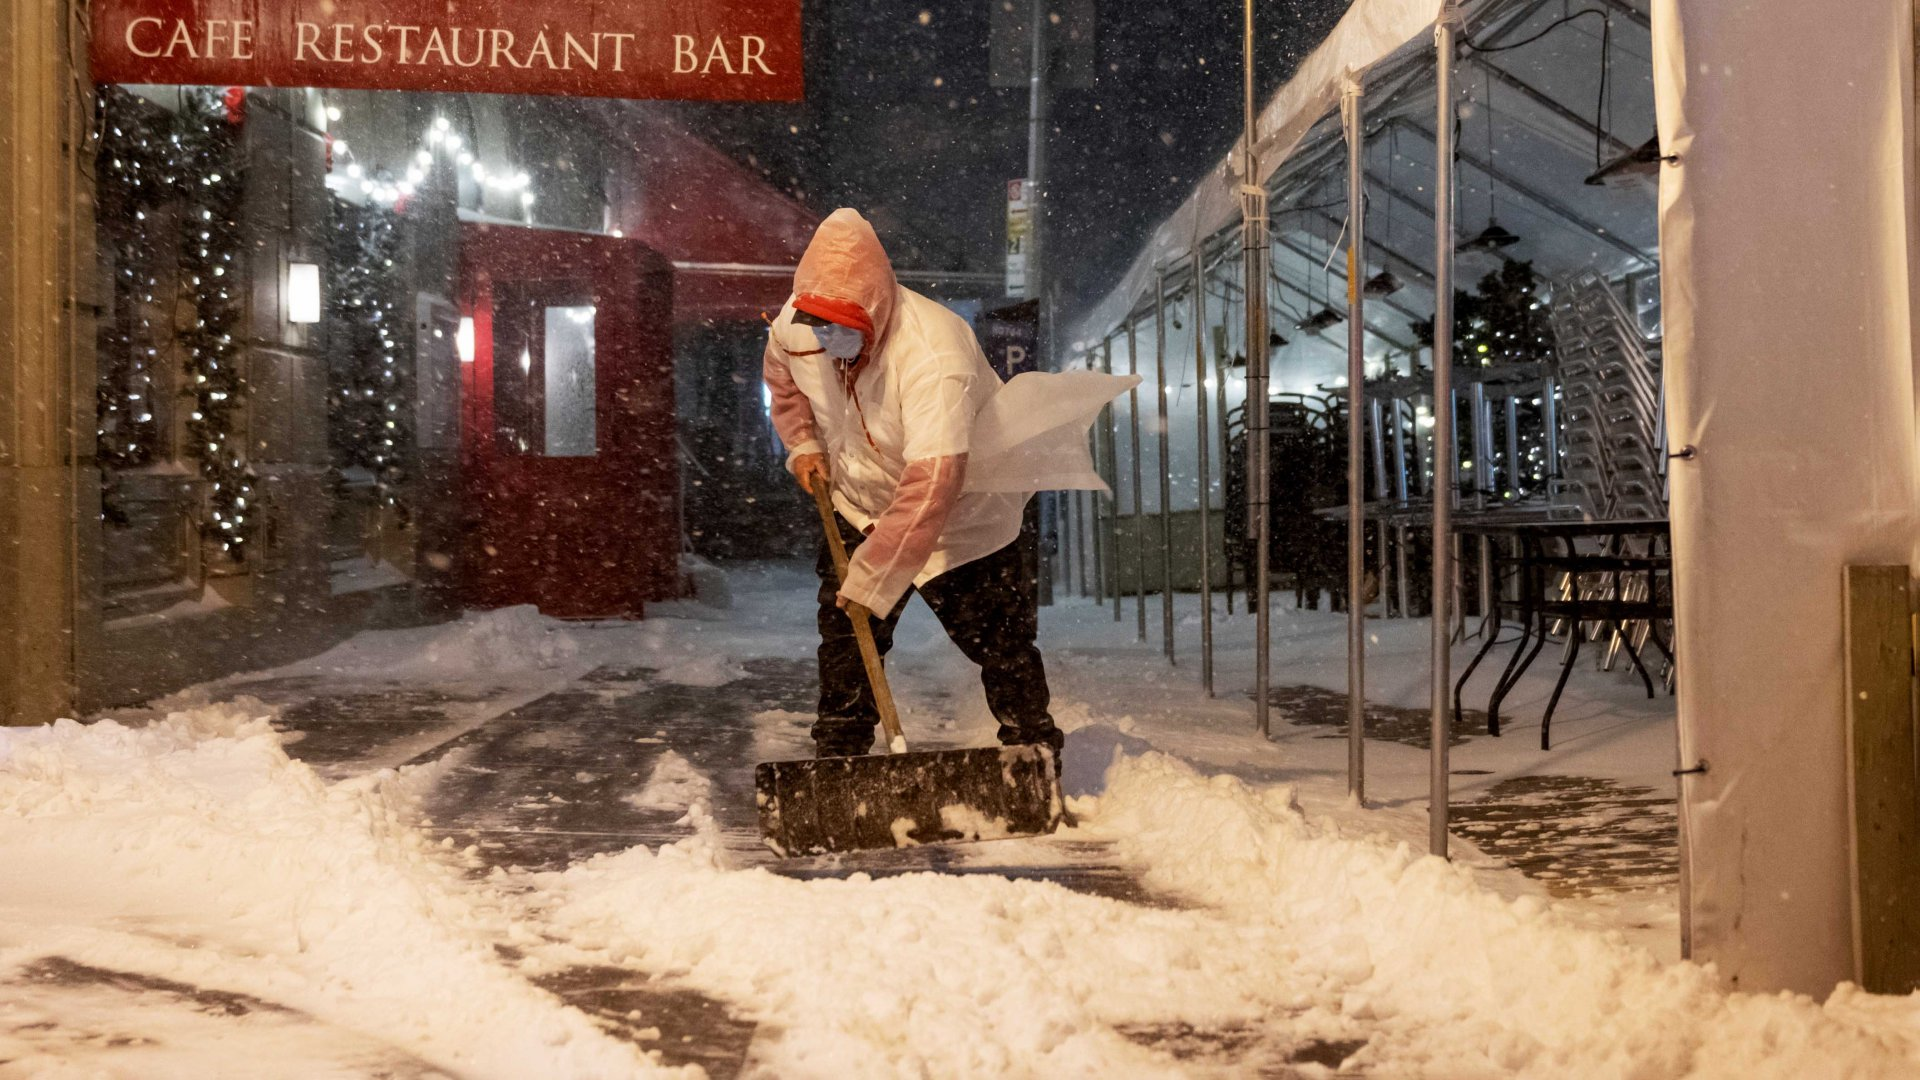 Restaurants' Winter Plan: Anything and Everything to Stay Alive